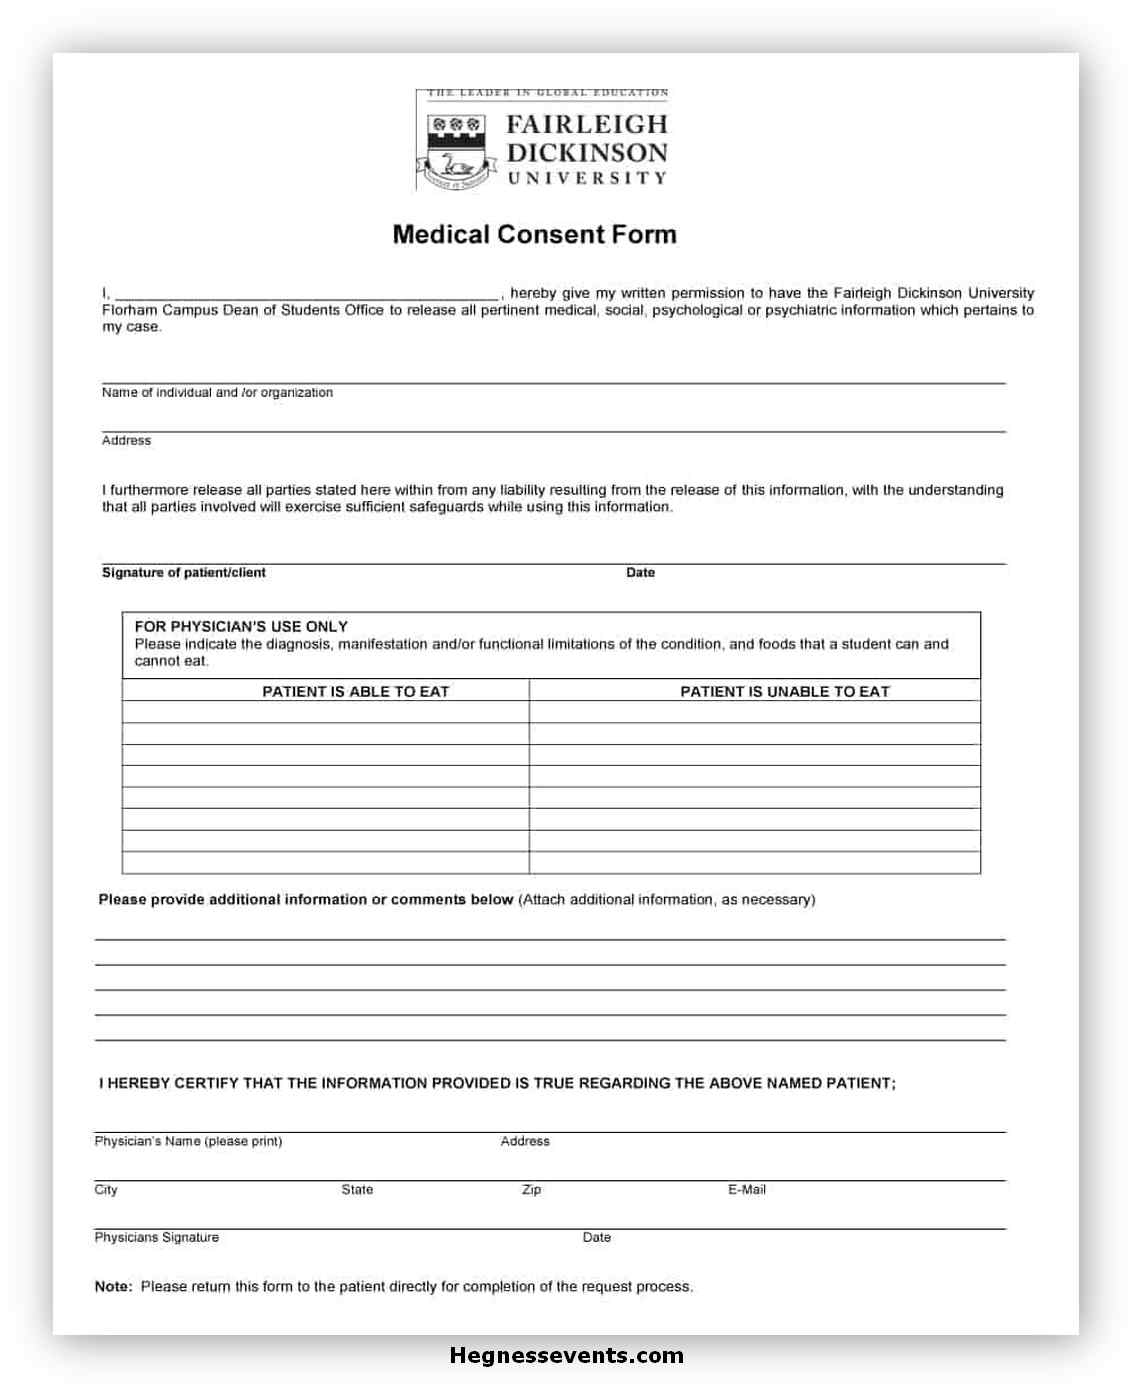 Medical Consent Form Printable 08